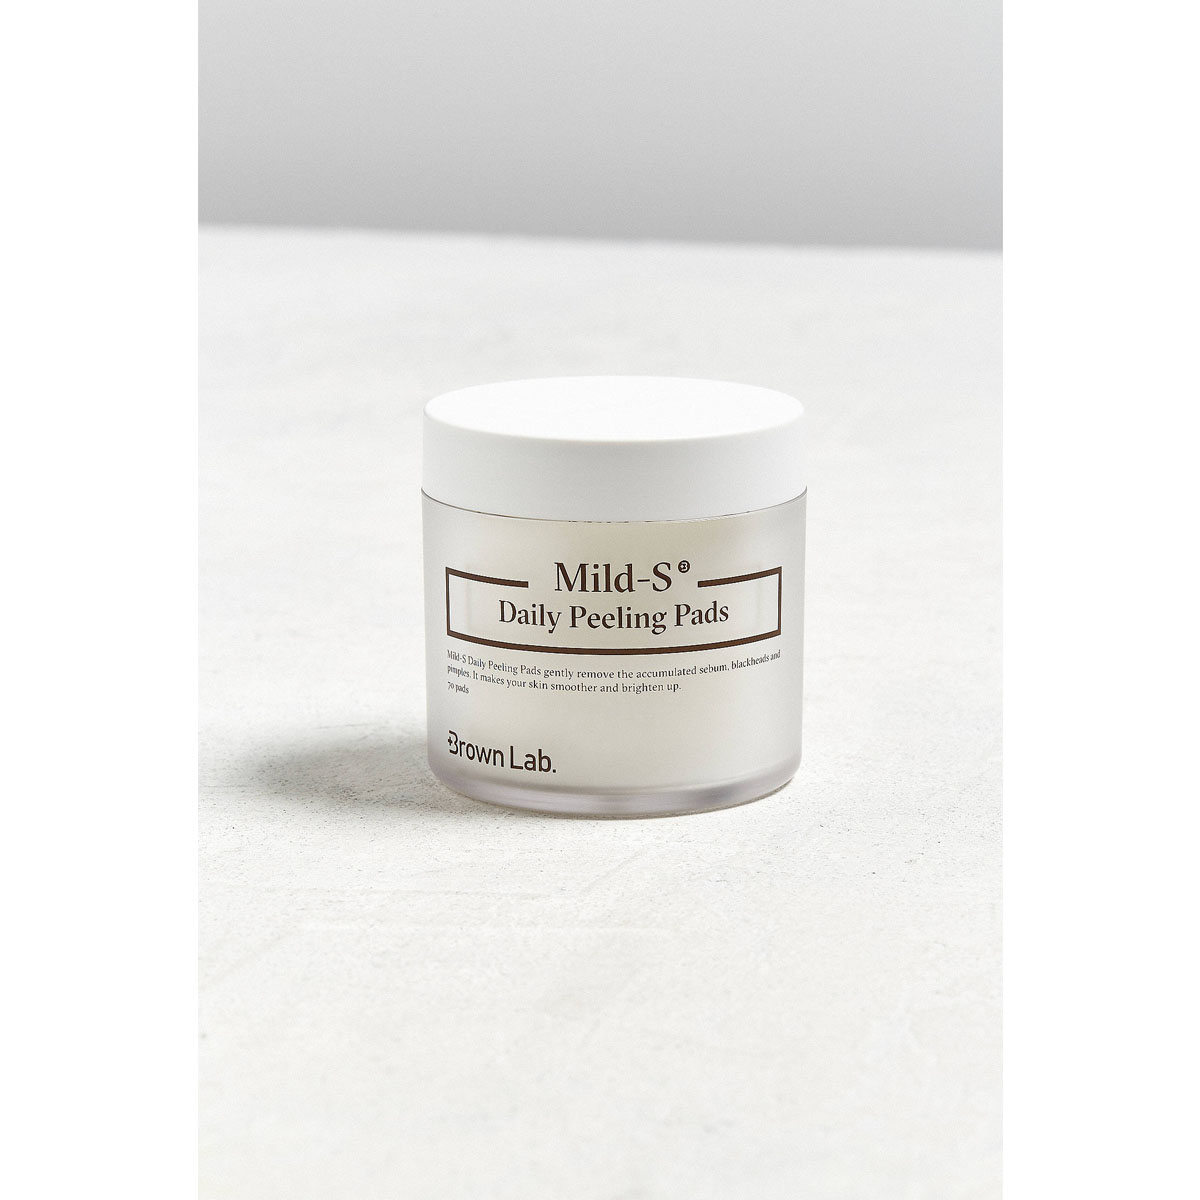 Brown Lab Mild-S Daily Peeling Pads